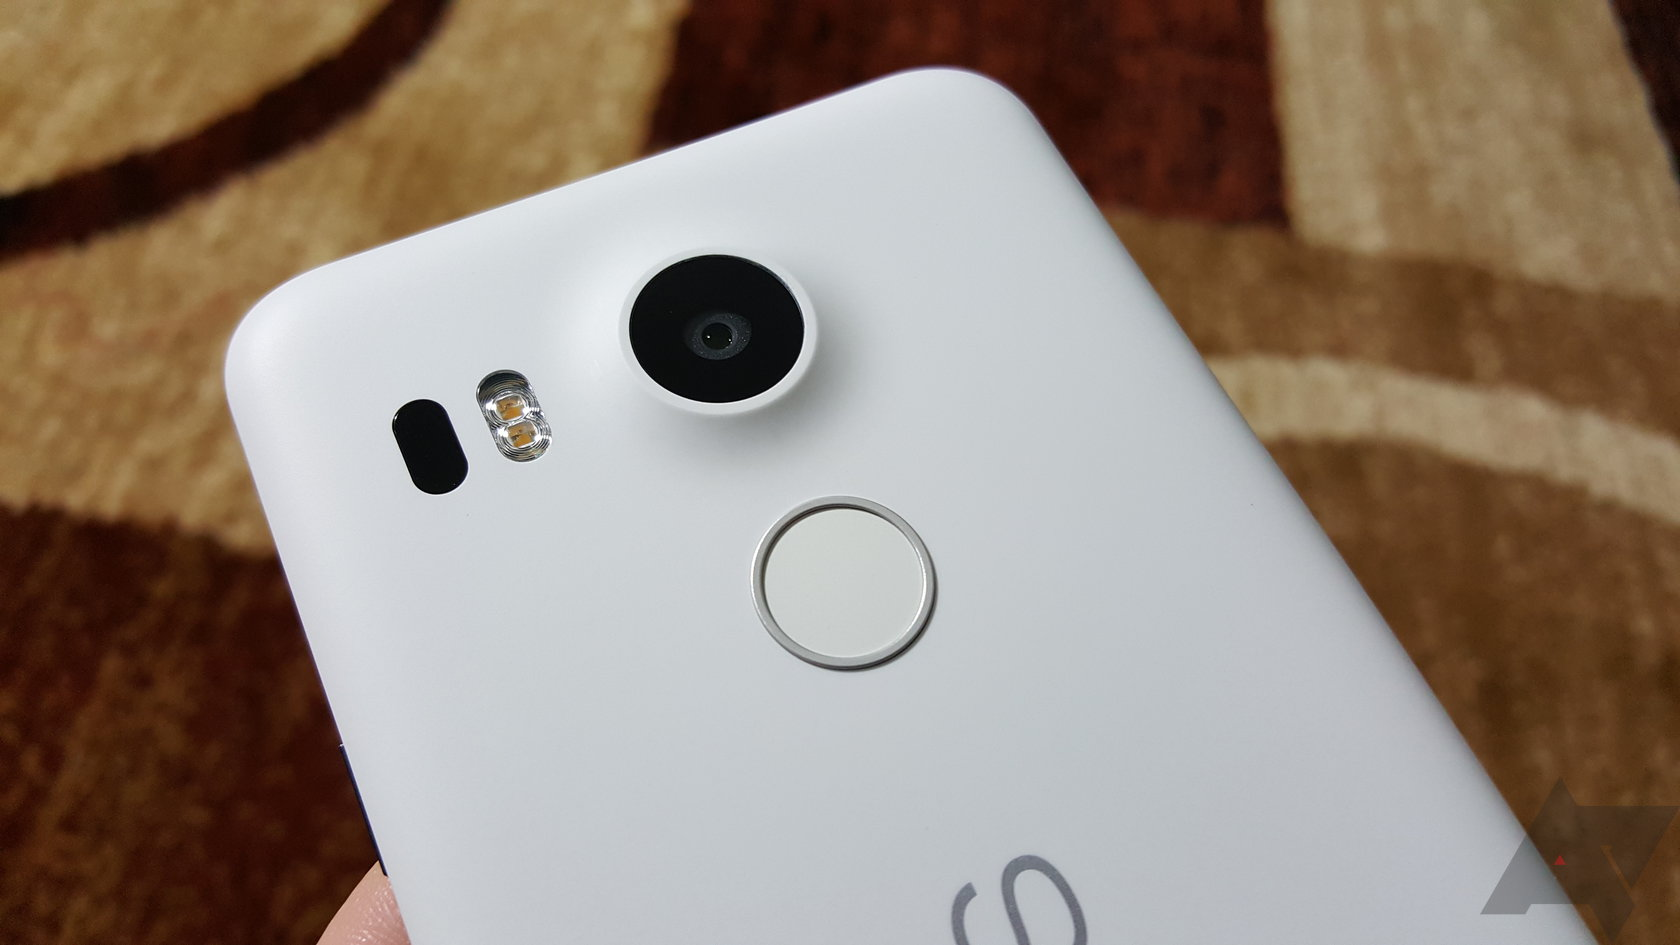 Google Lays Out Requirements For Fingerprint Sensors In